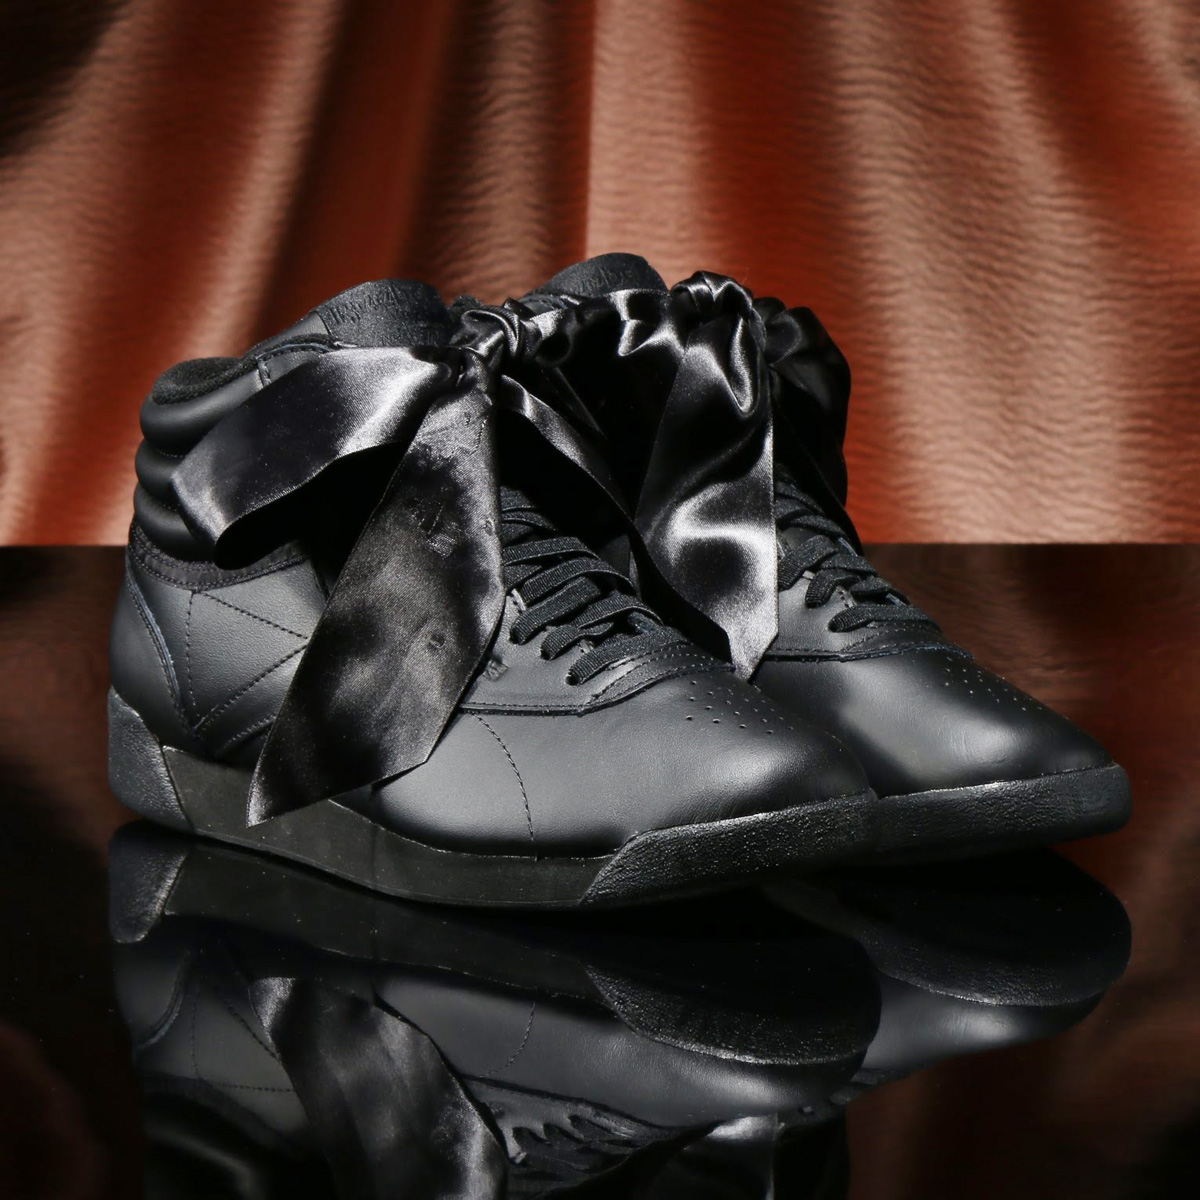 e8cc6e1146c963 Reebok F S HI SATIN BOW (Reebok free-style high satin BOW) BLACK GRAY 18SP-I